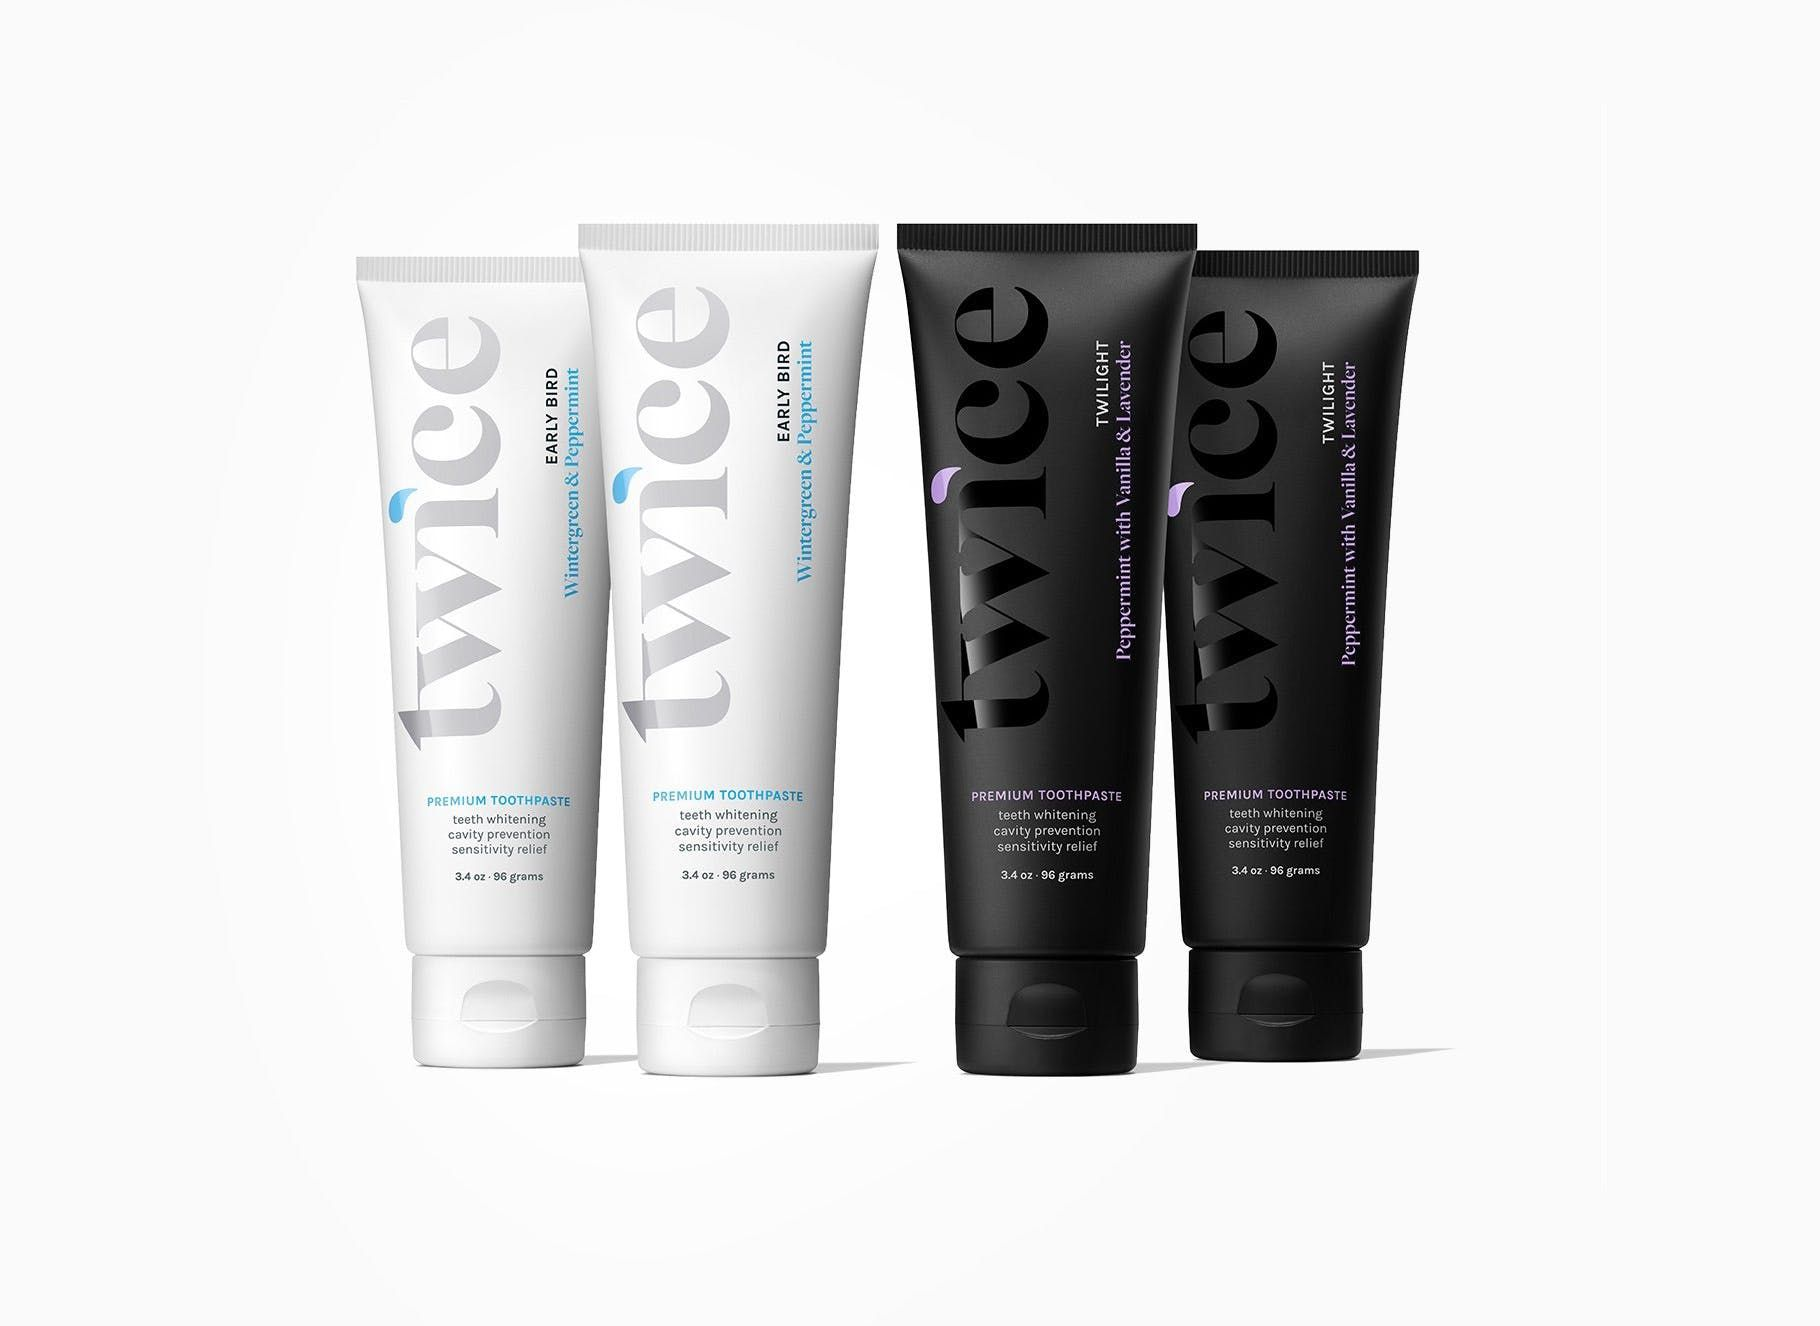 7 Dental Products That Will Make You Look Forward to